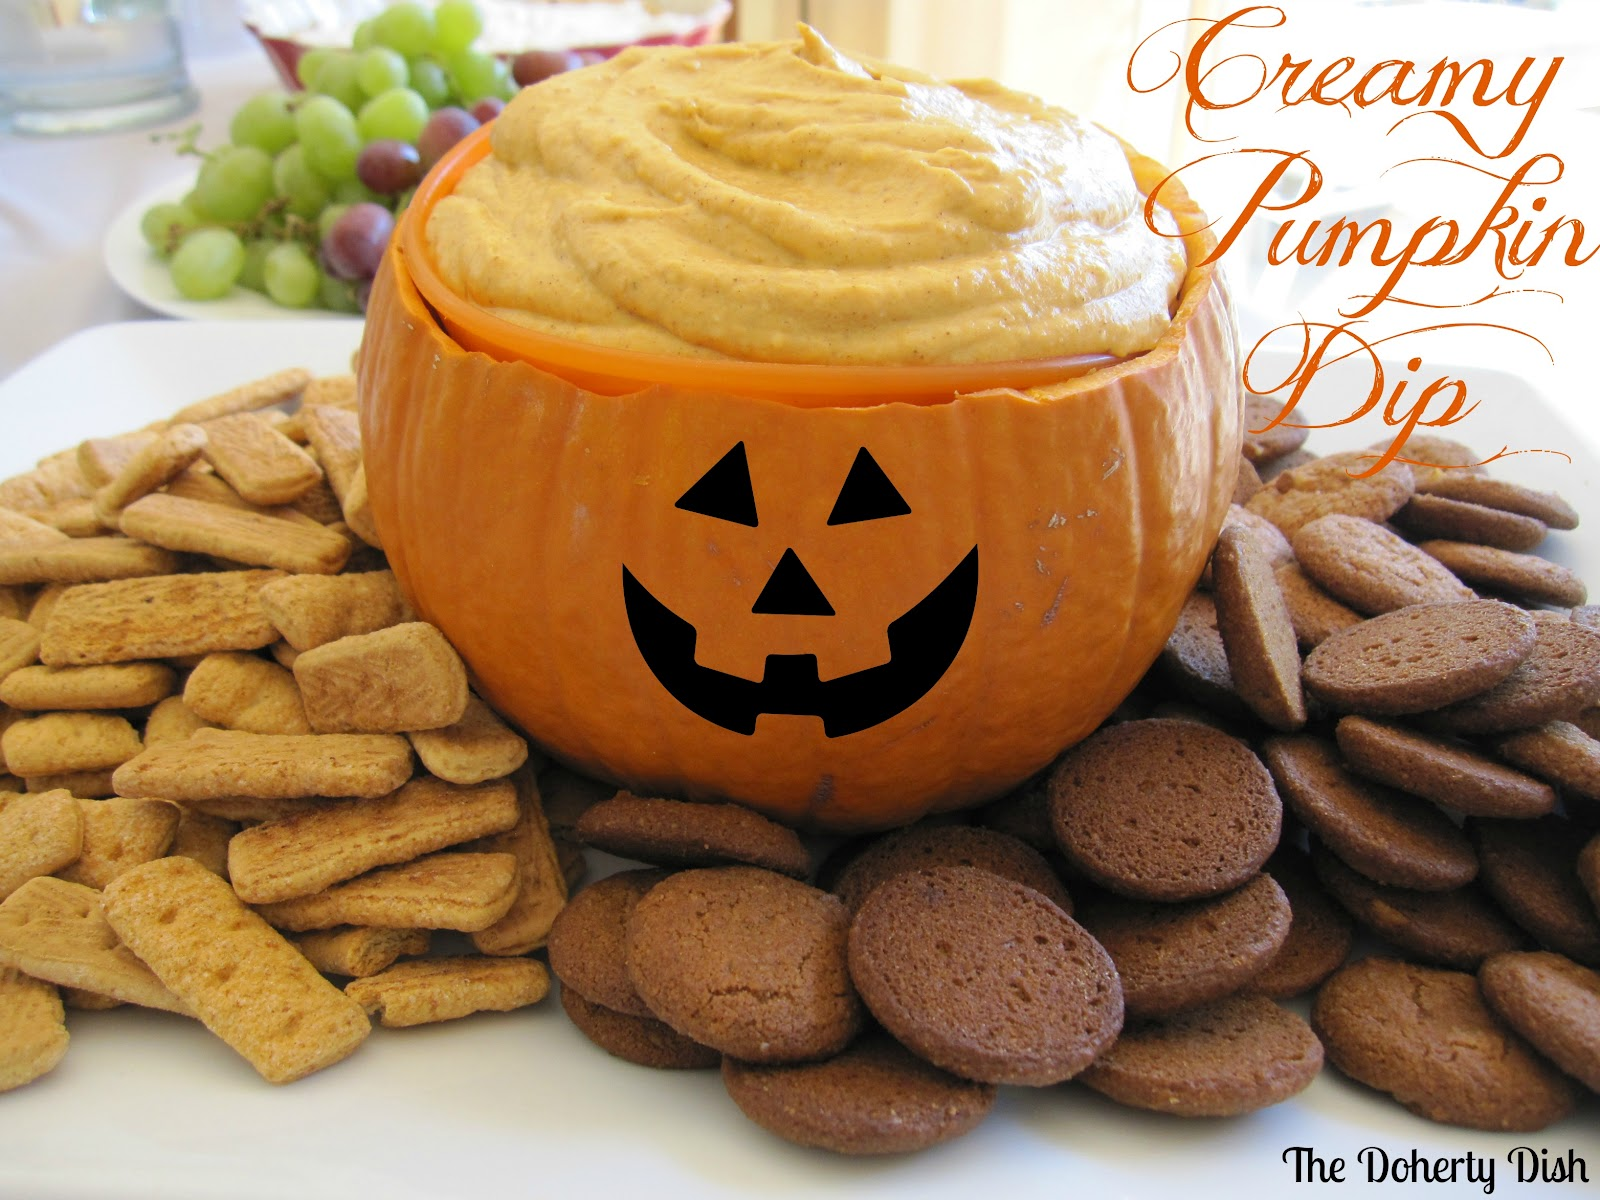 The Doherty Dish: Creamy Pumpkin Dip